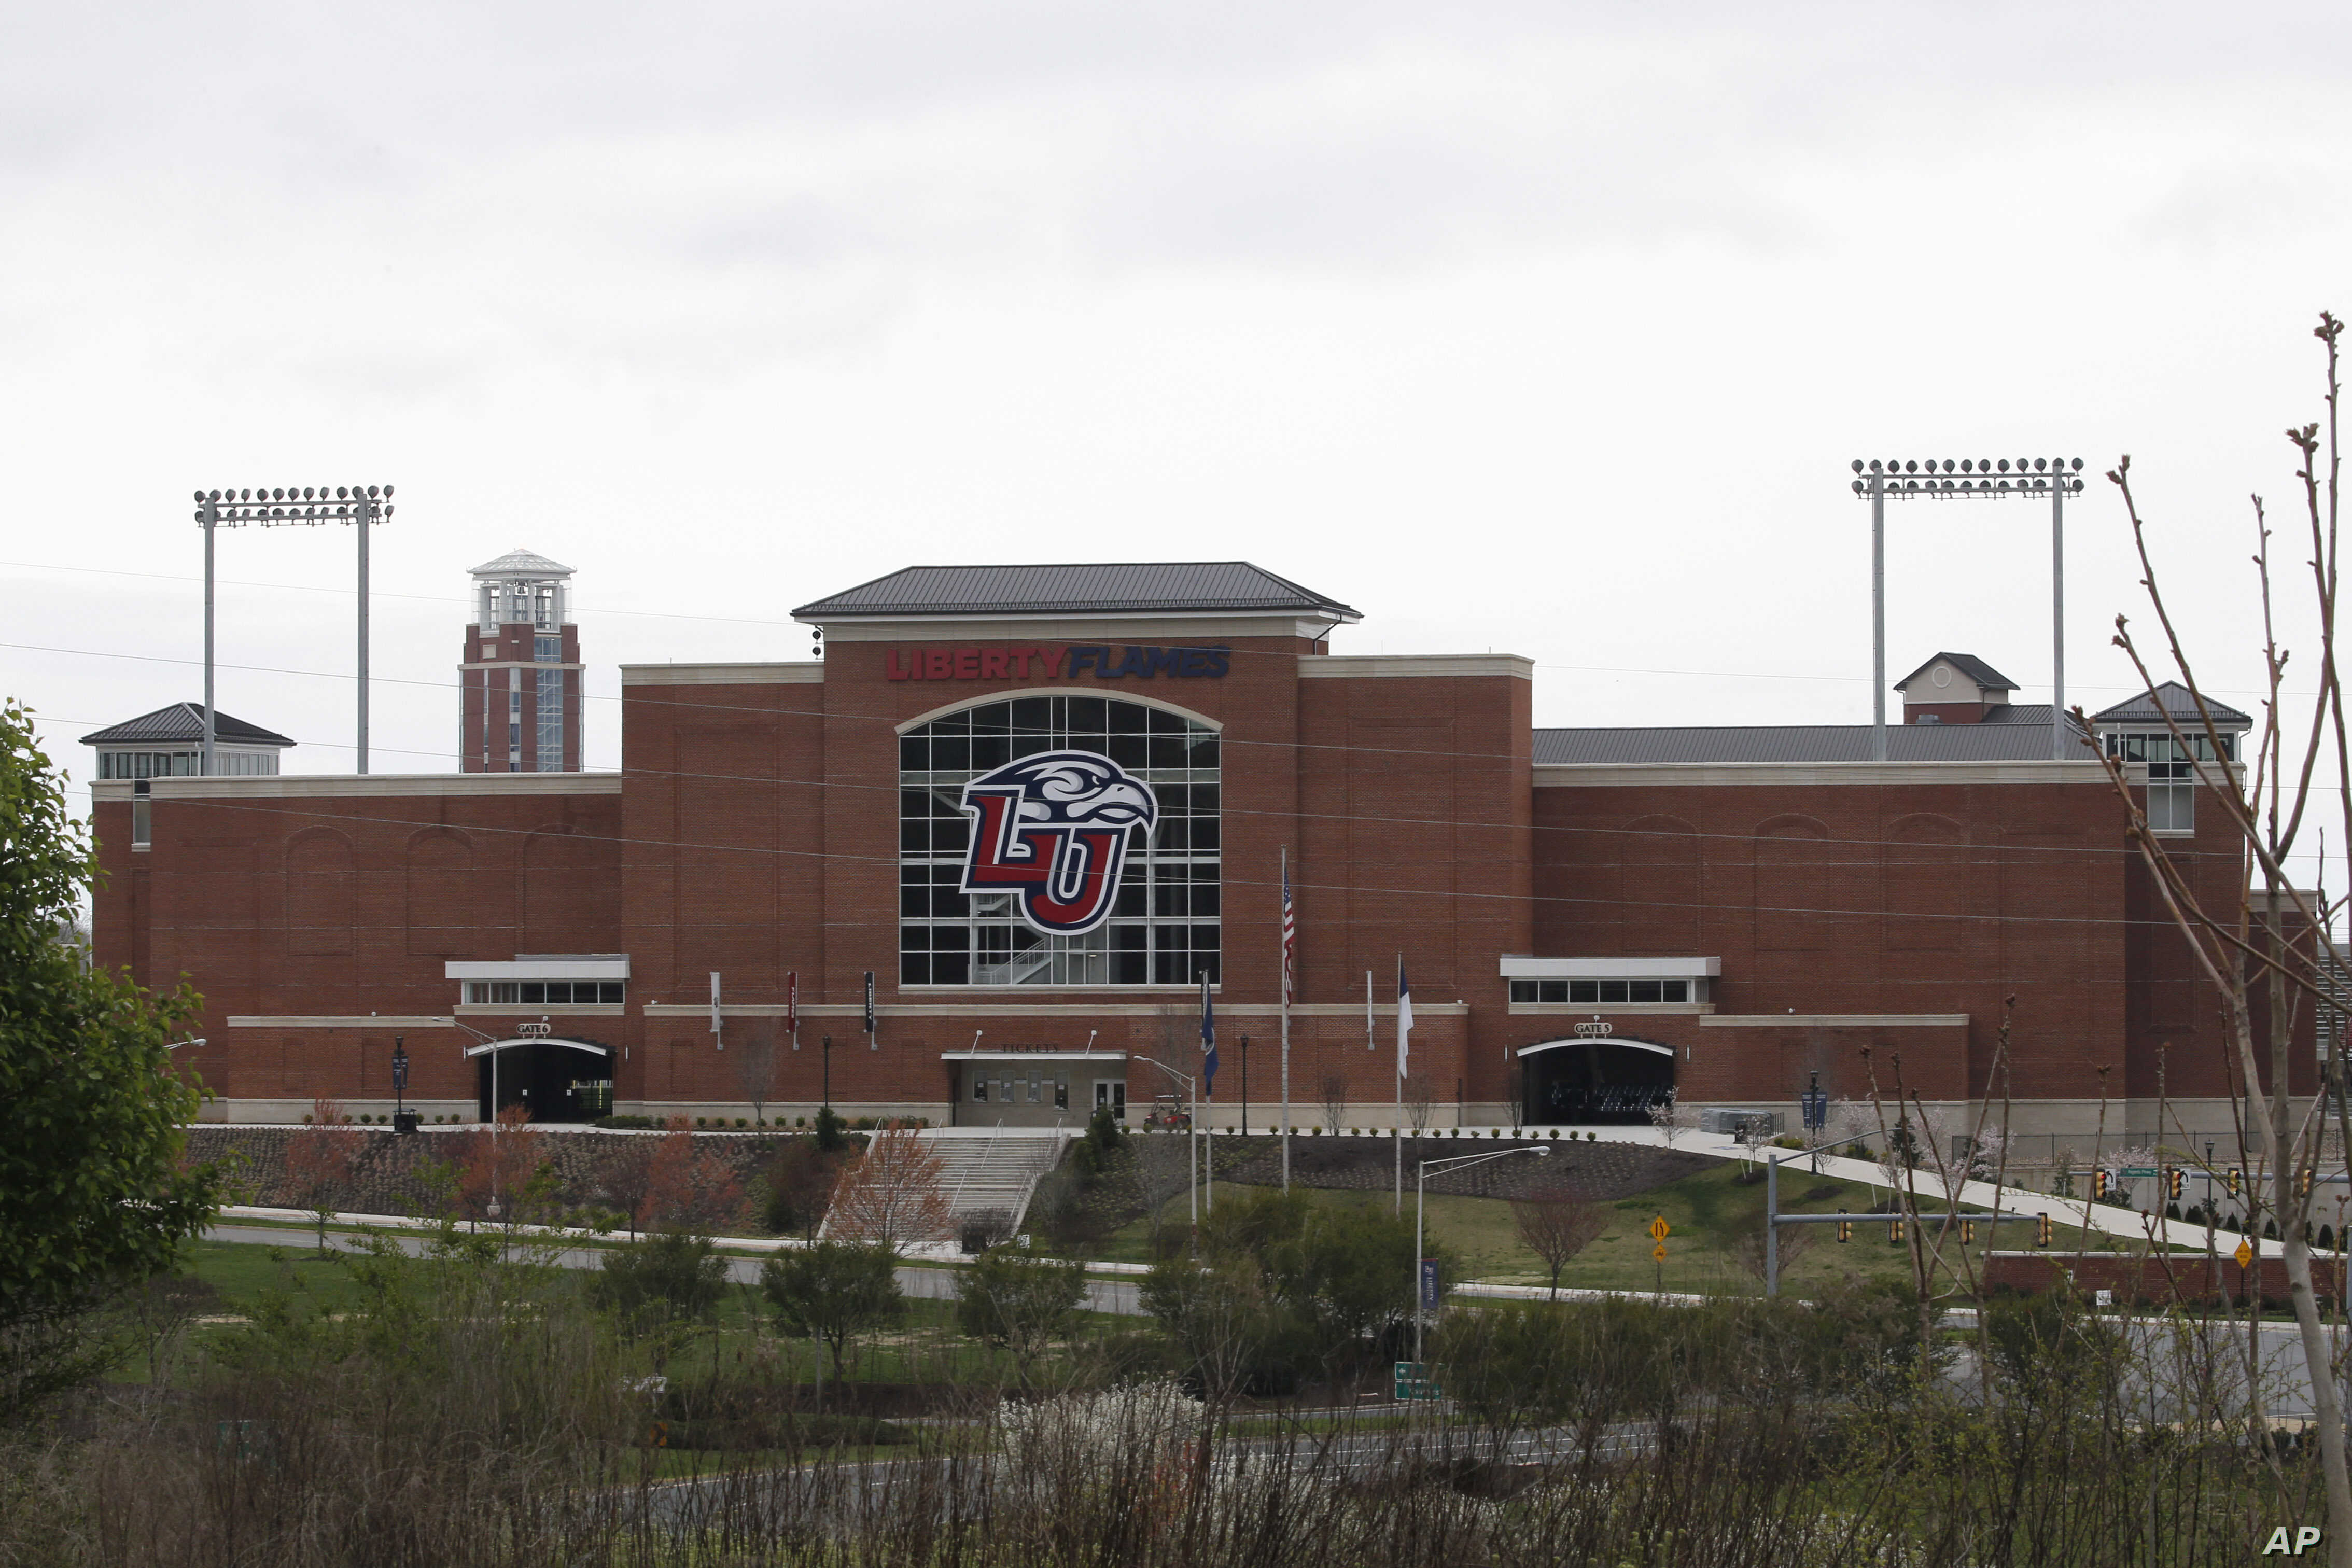 Students Sue Liberty University Over Covid 19 Response Voice Of